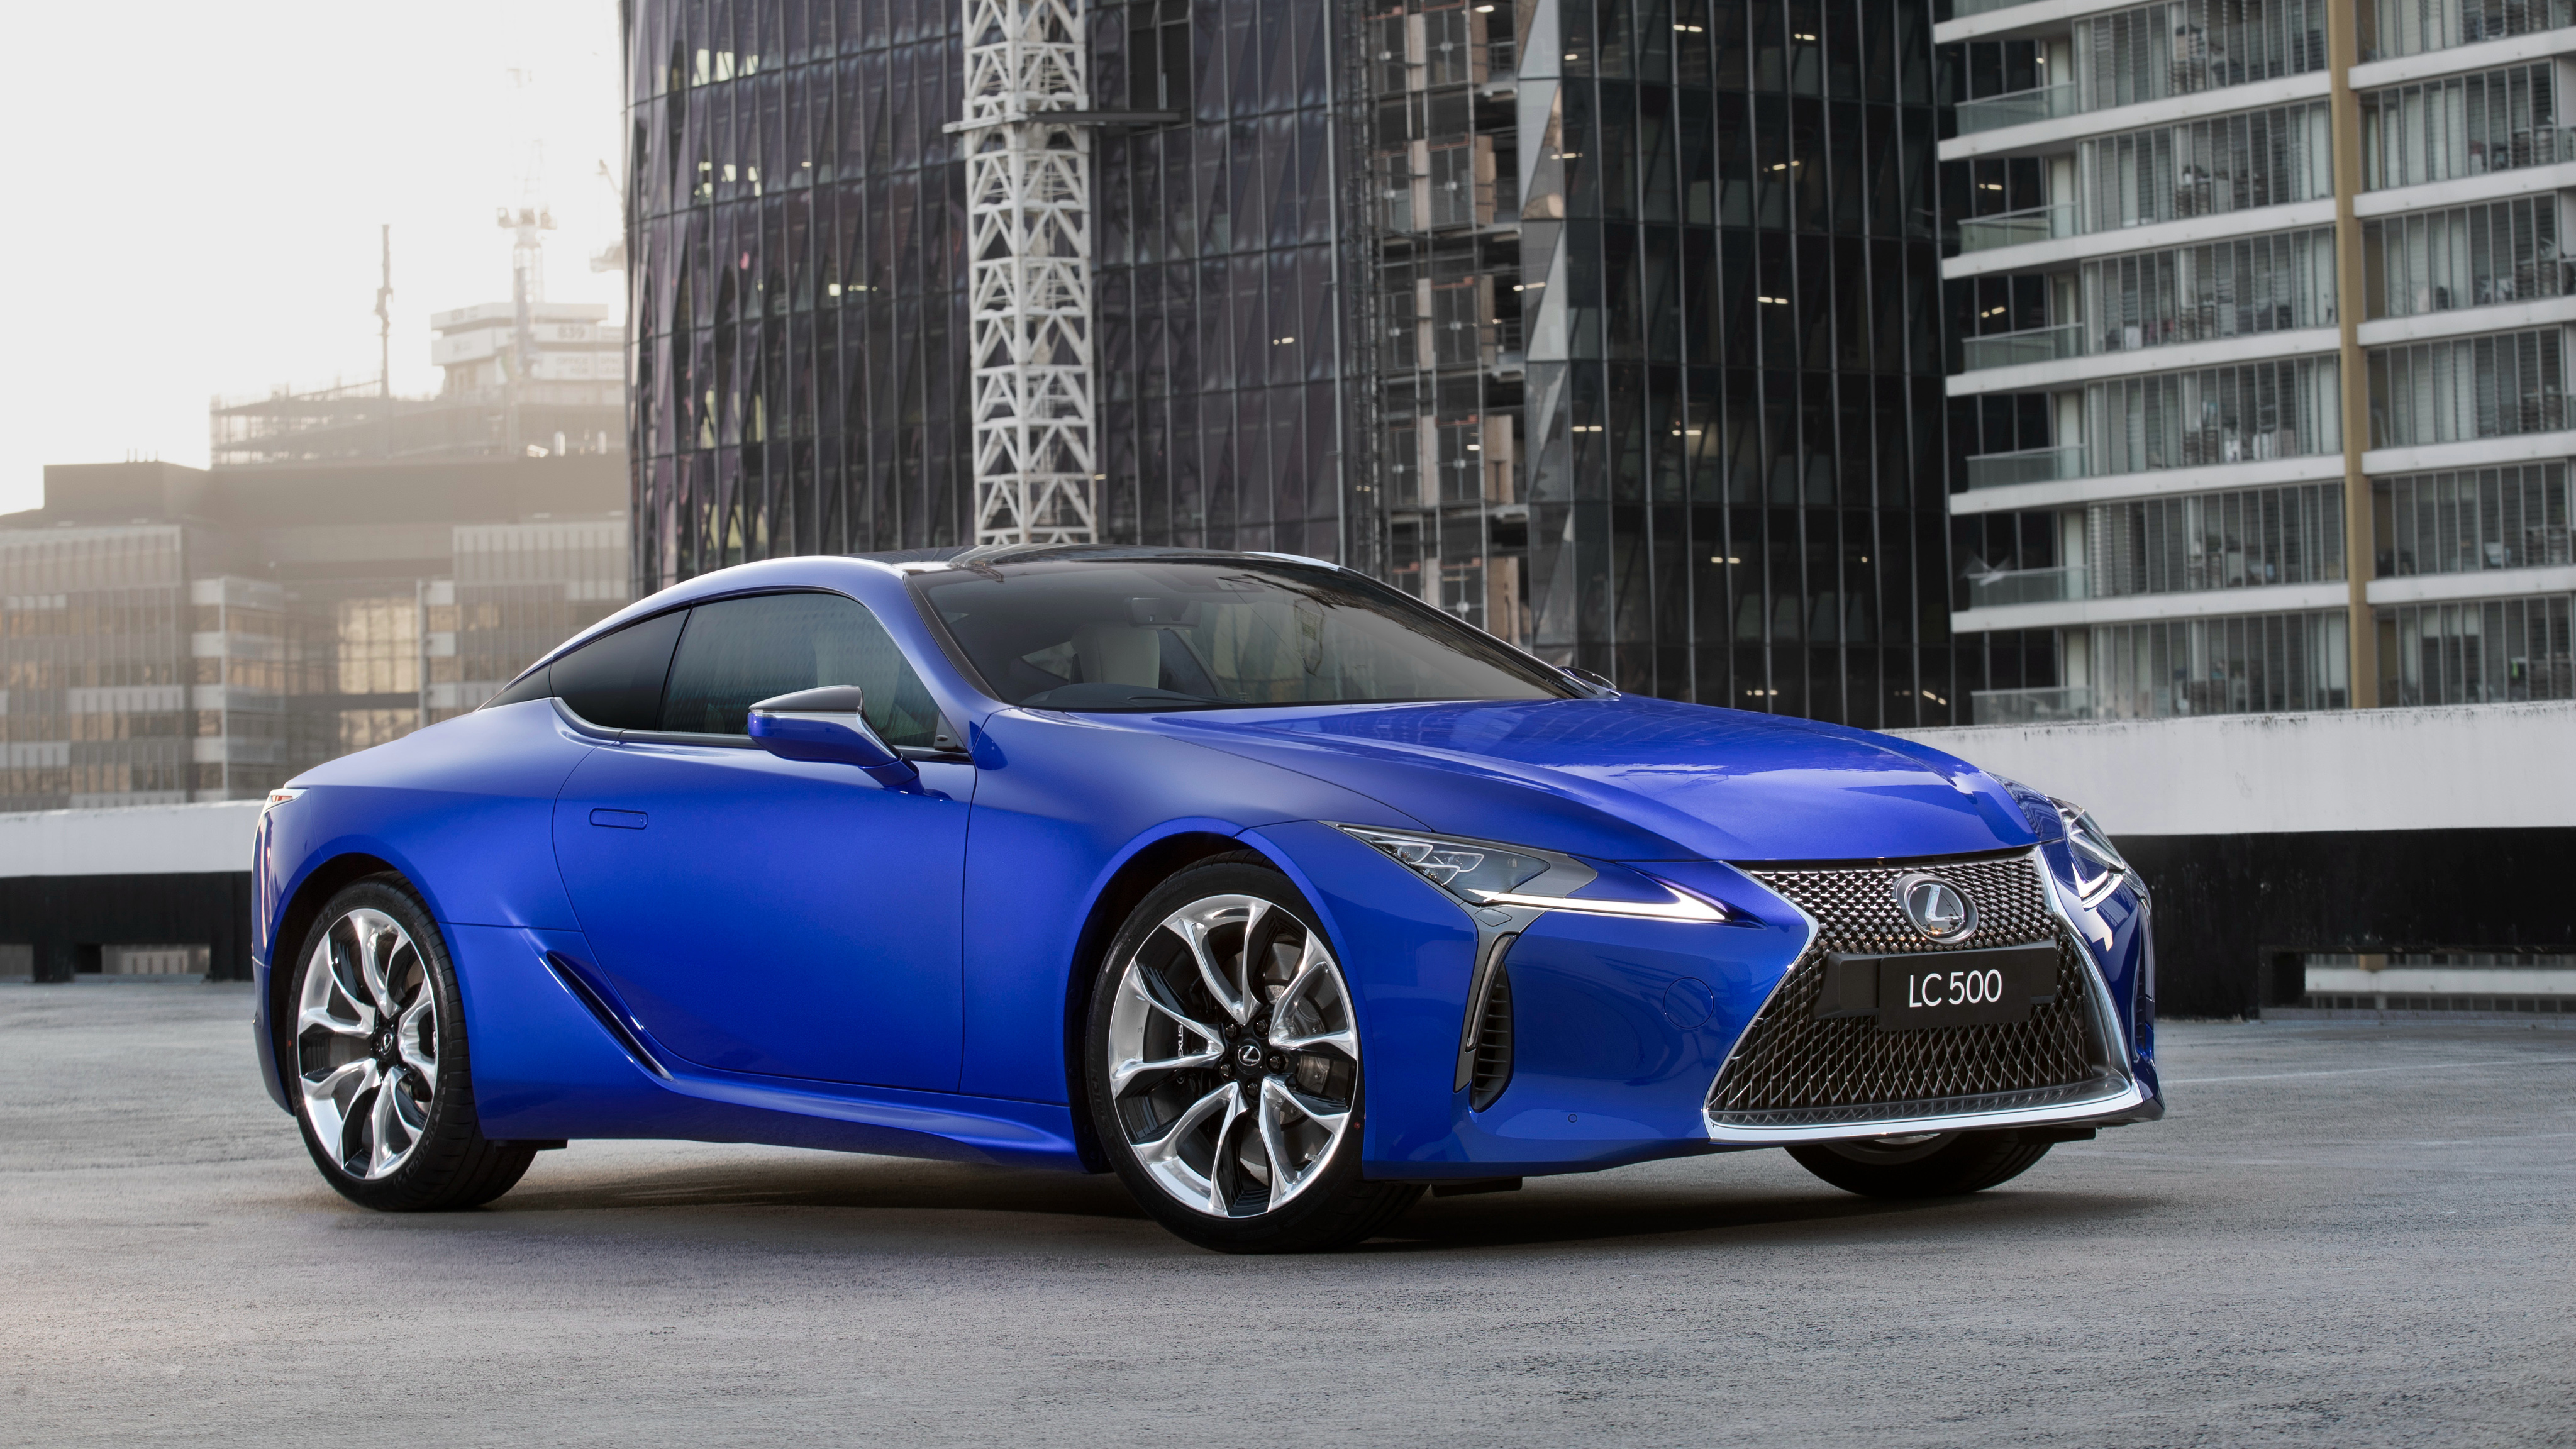 Lexus Lc 500 Morphic Blue Limited Edition 2018 4k Wallpapers Hd